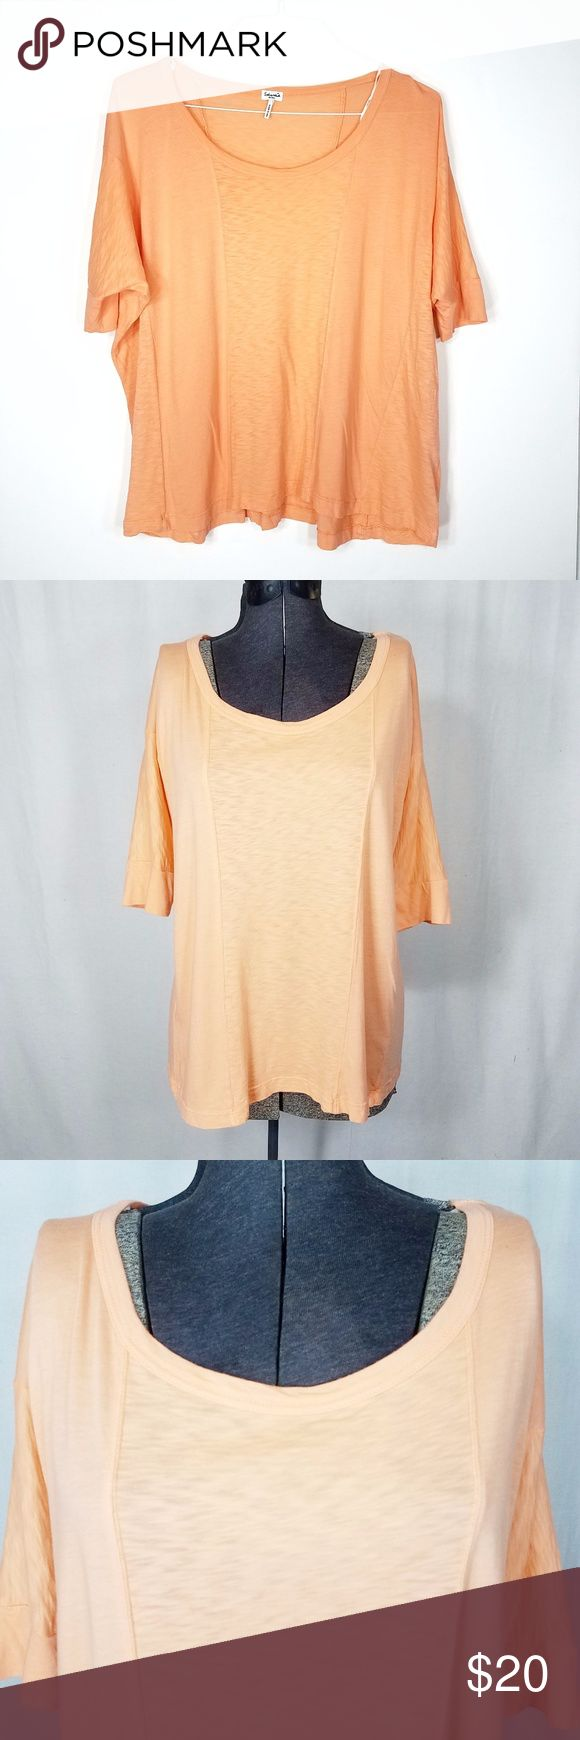 "Splendid Oversized T Shirt Tunic Orange Cotton Sm Splendid Size Small Light Orange Cream  Batwing Sleeve Cotton, Modal Blend Oversized Lightweight Great preowned condition with no holes or stains  Measurements laying flat: Length:25.5""  Bust:26+""  Waist:25+""  Sleeve:6"" Splendid Tops Tunics"